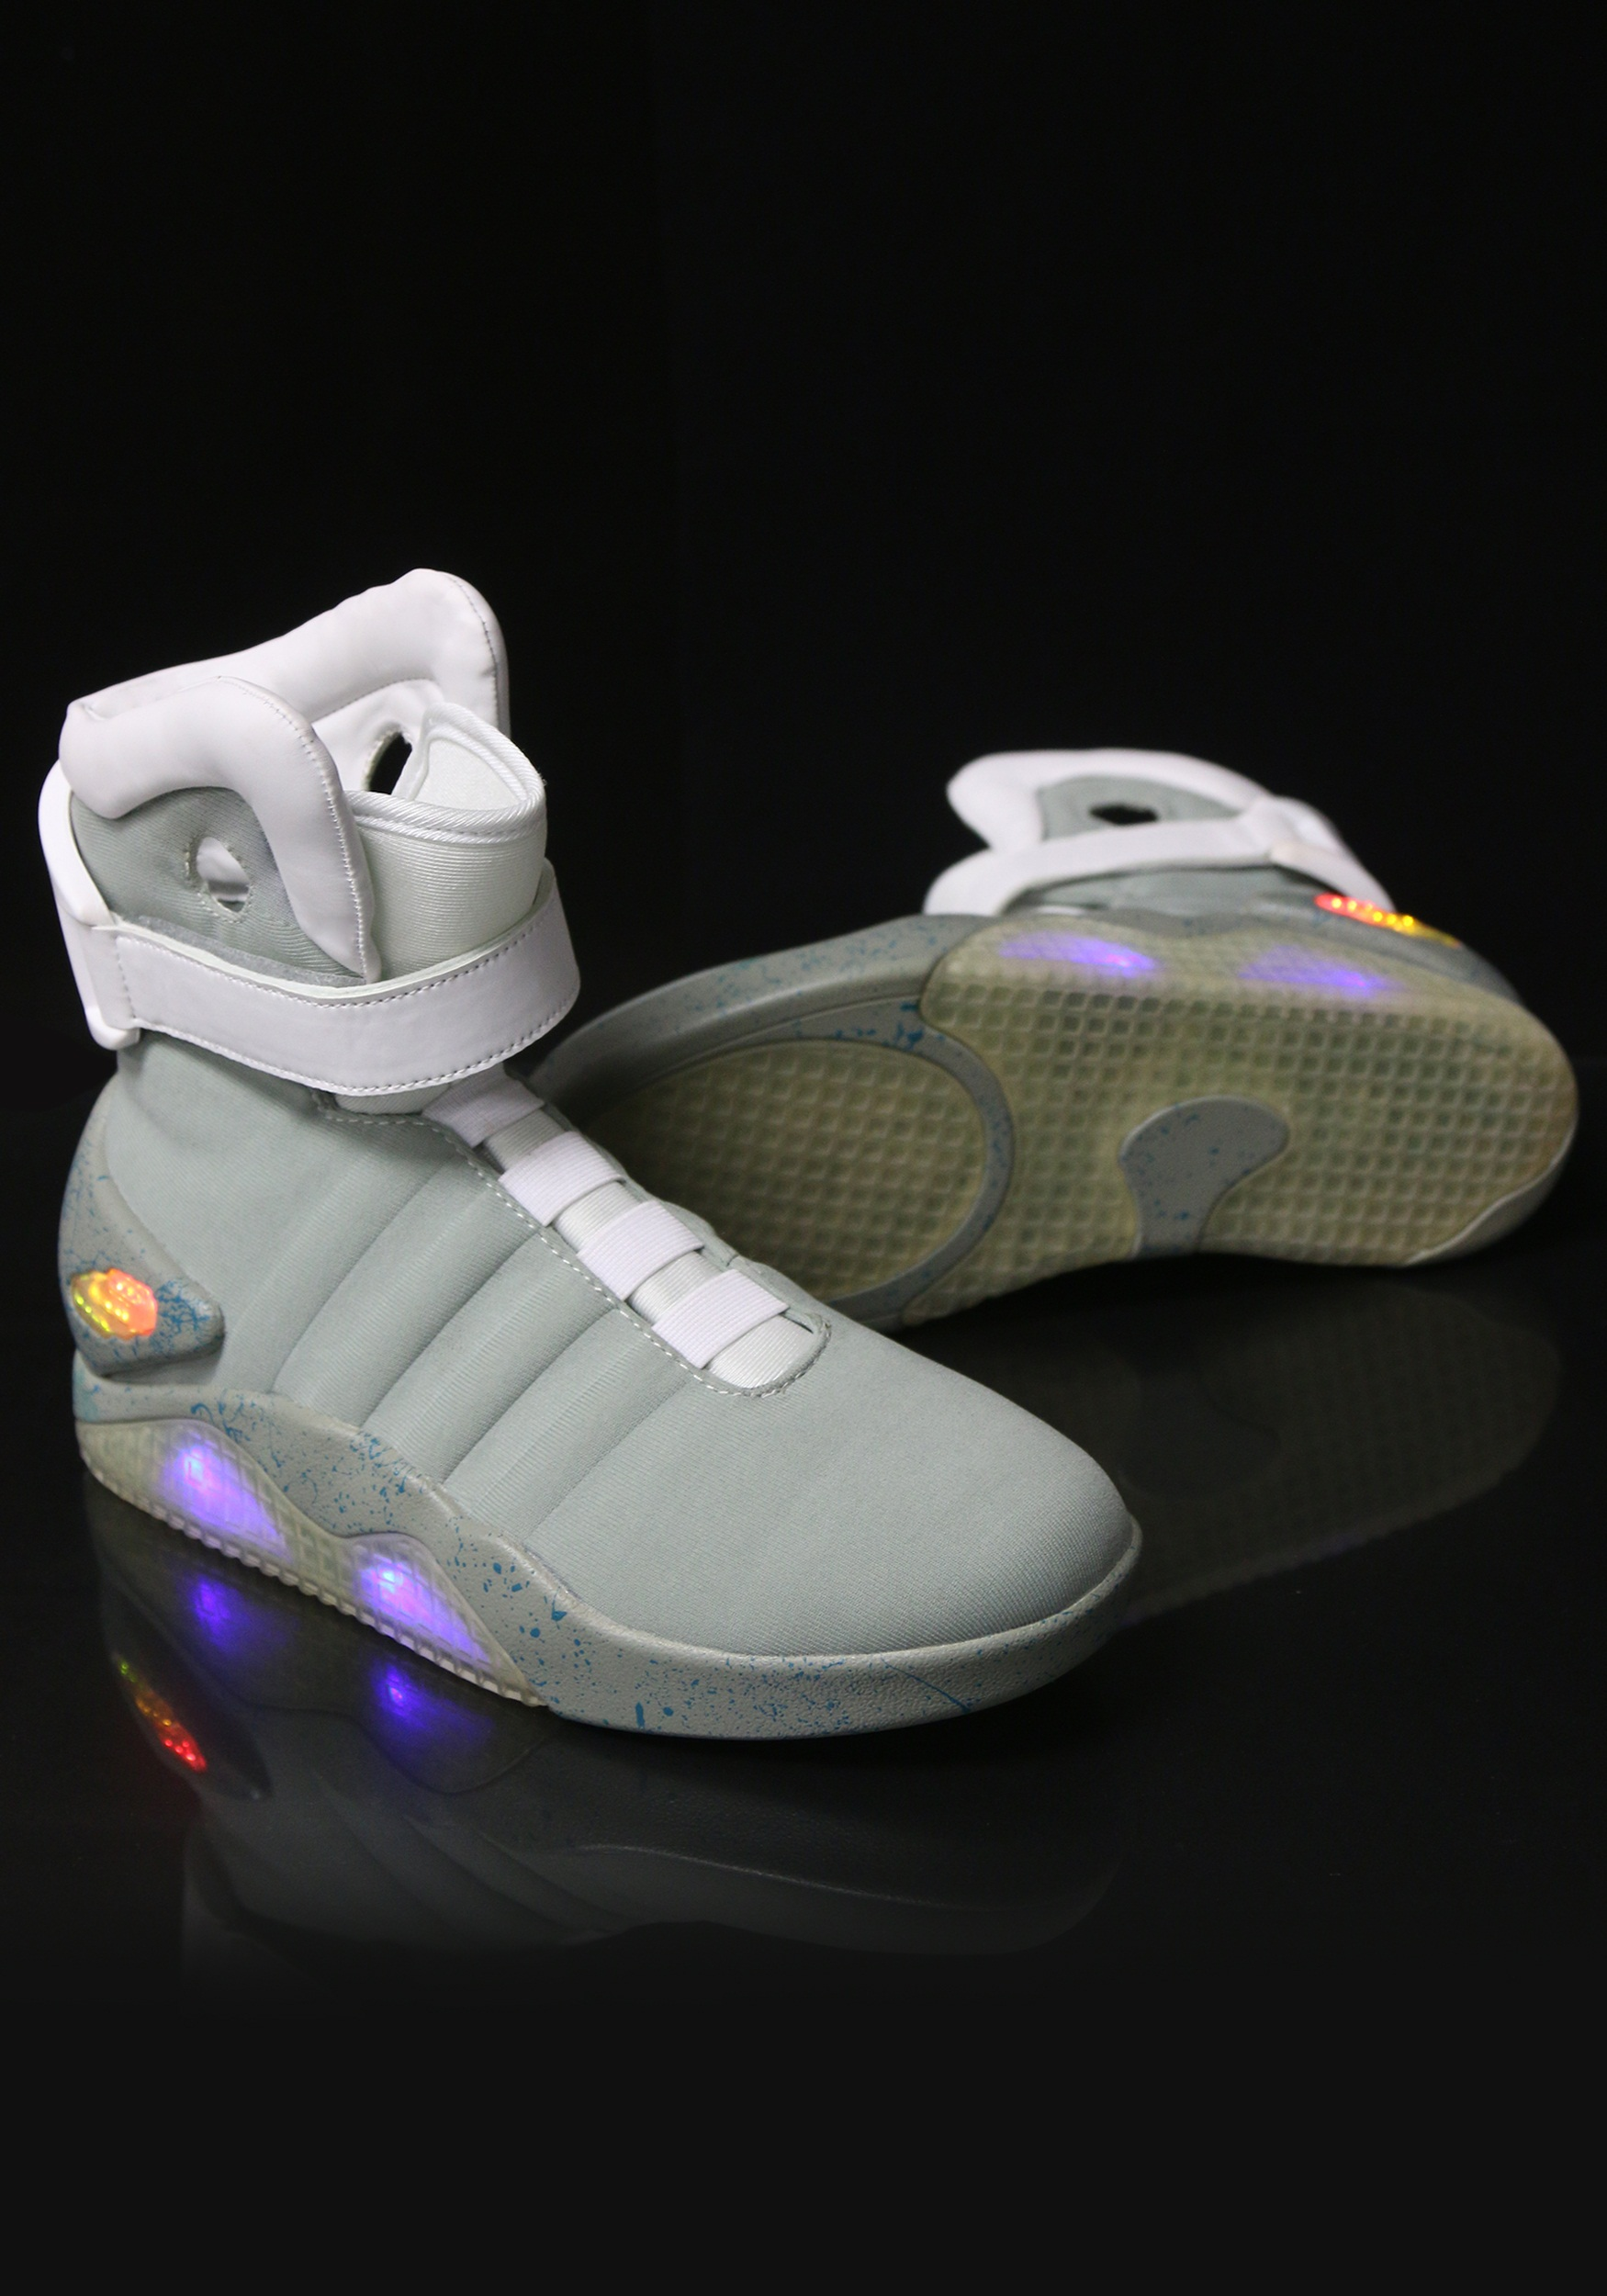 back to the future nike boots